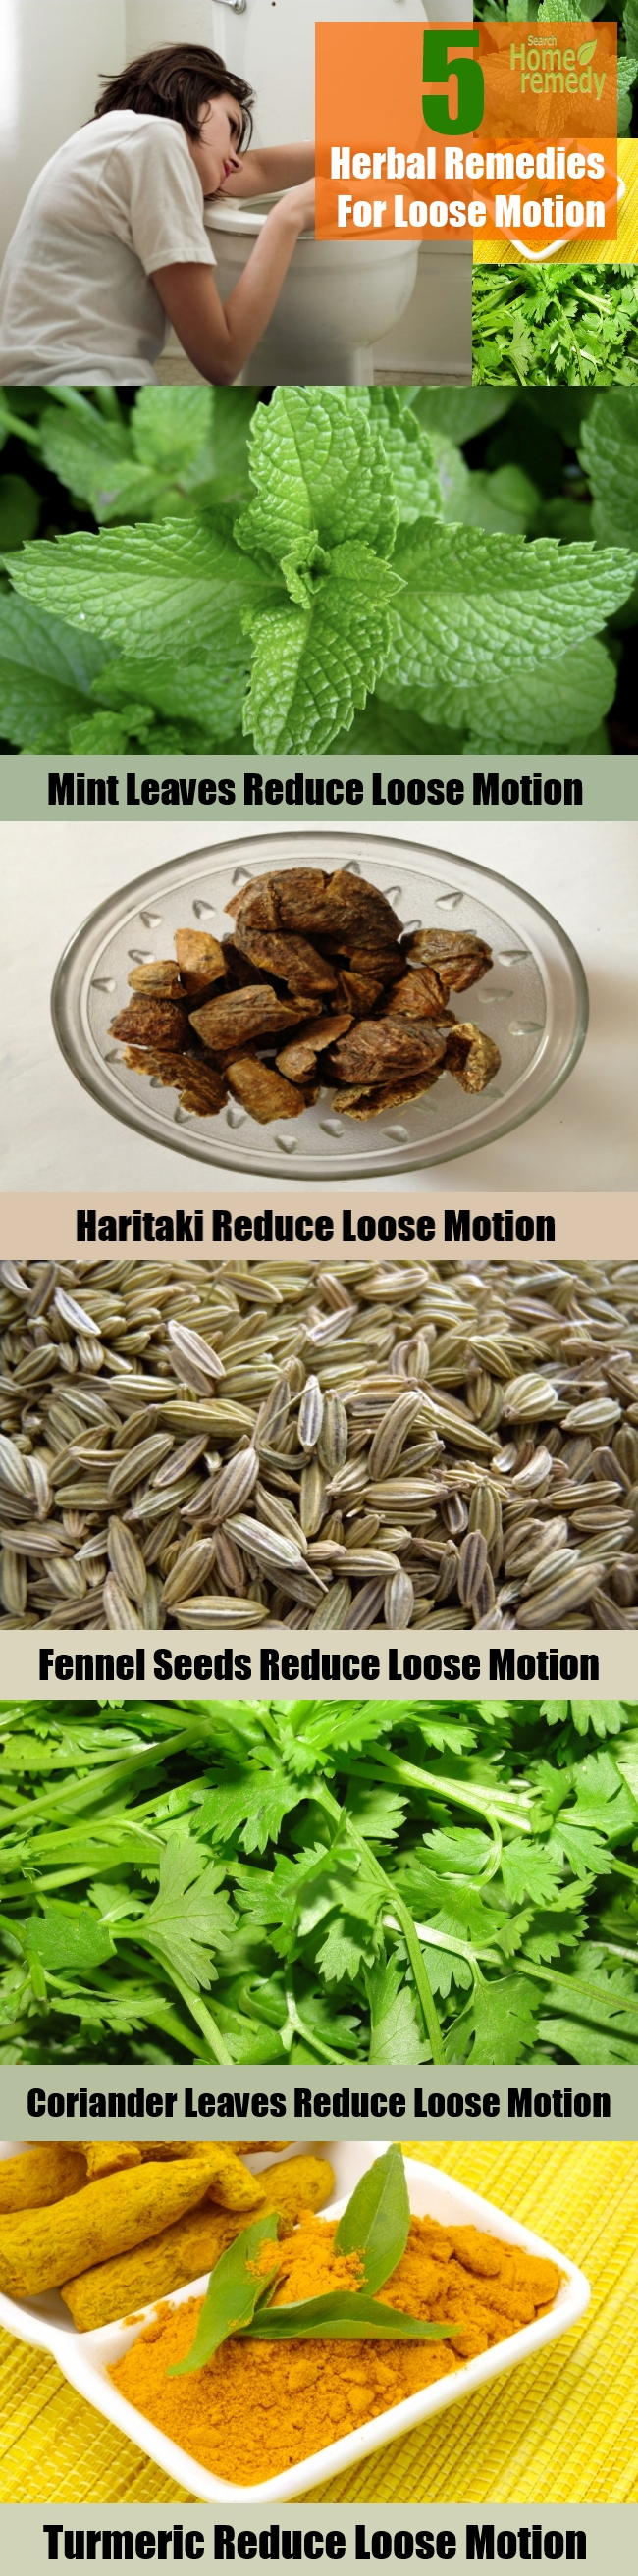 Effective 5 Herbal Remedies For Loose Motion